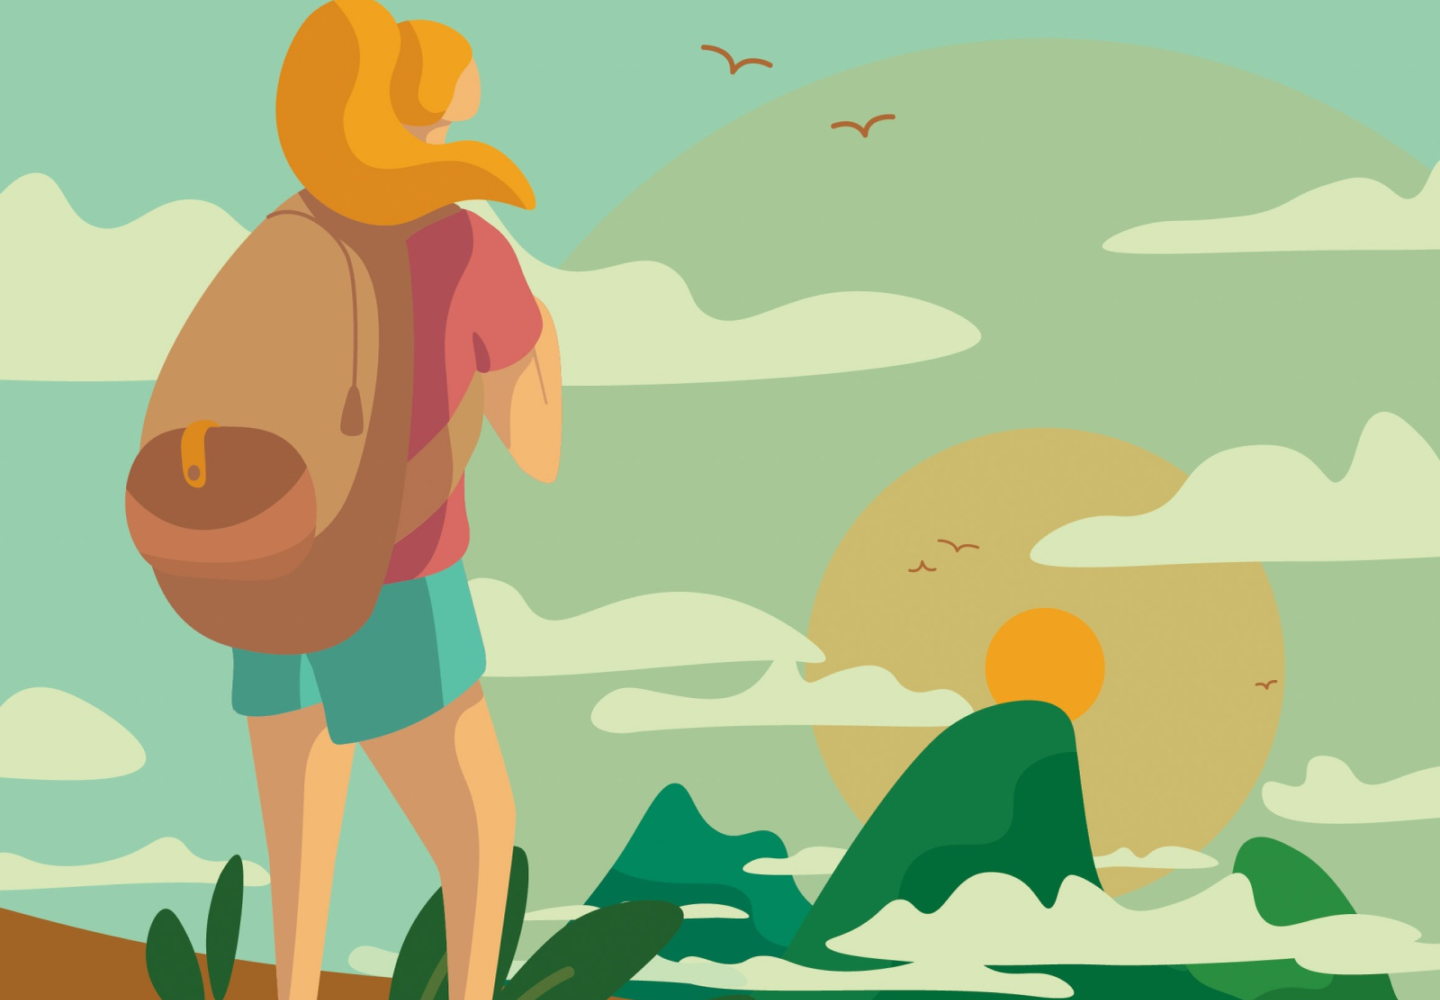 What to do in a gap year